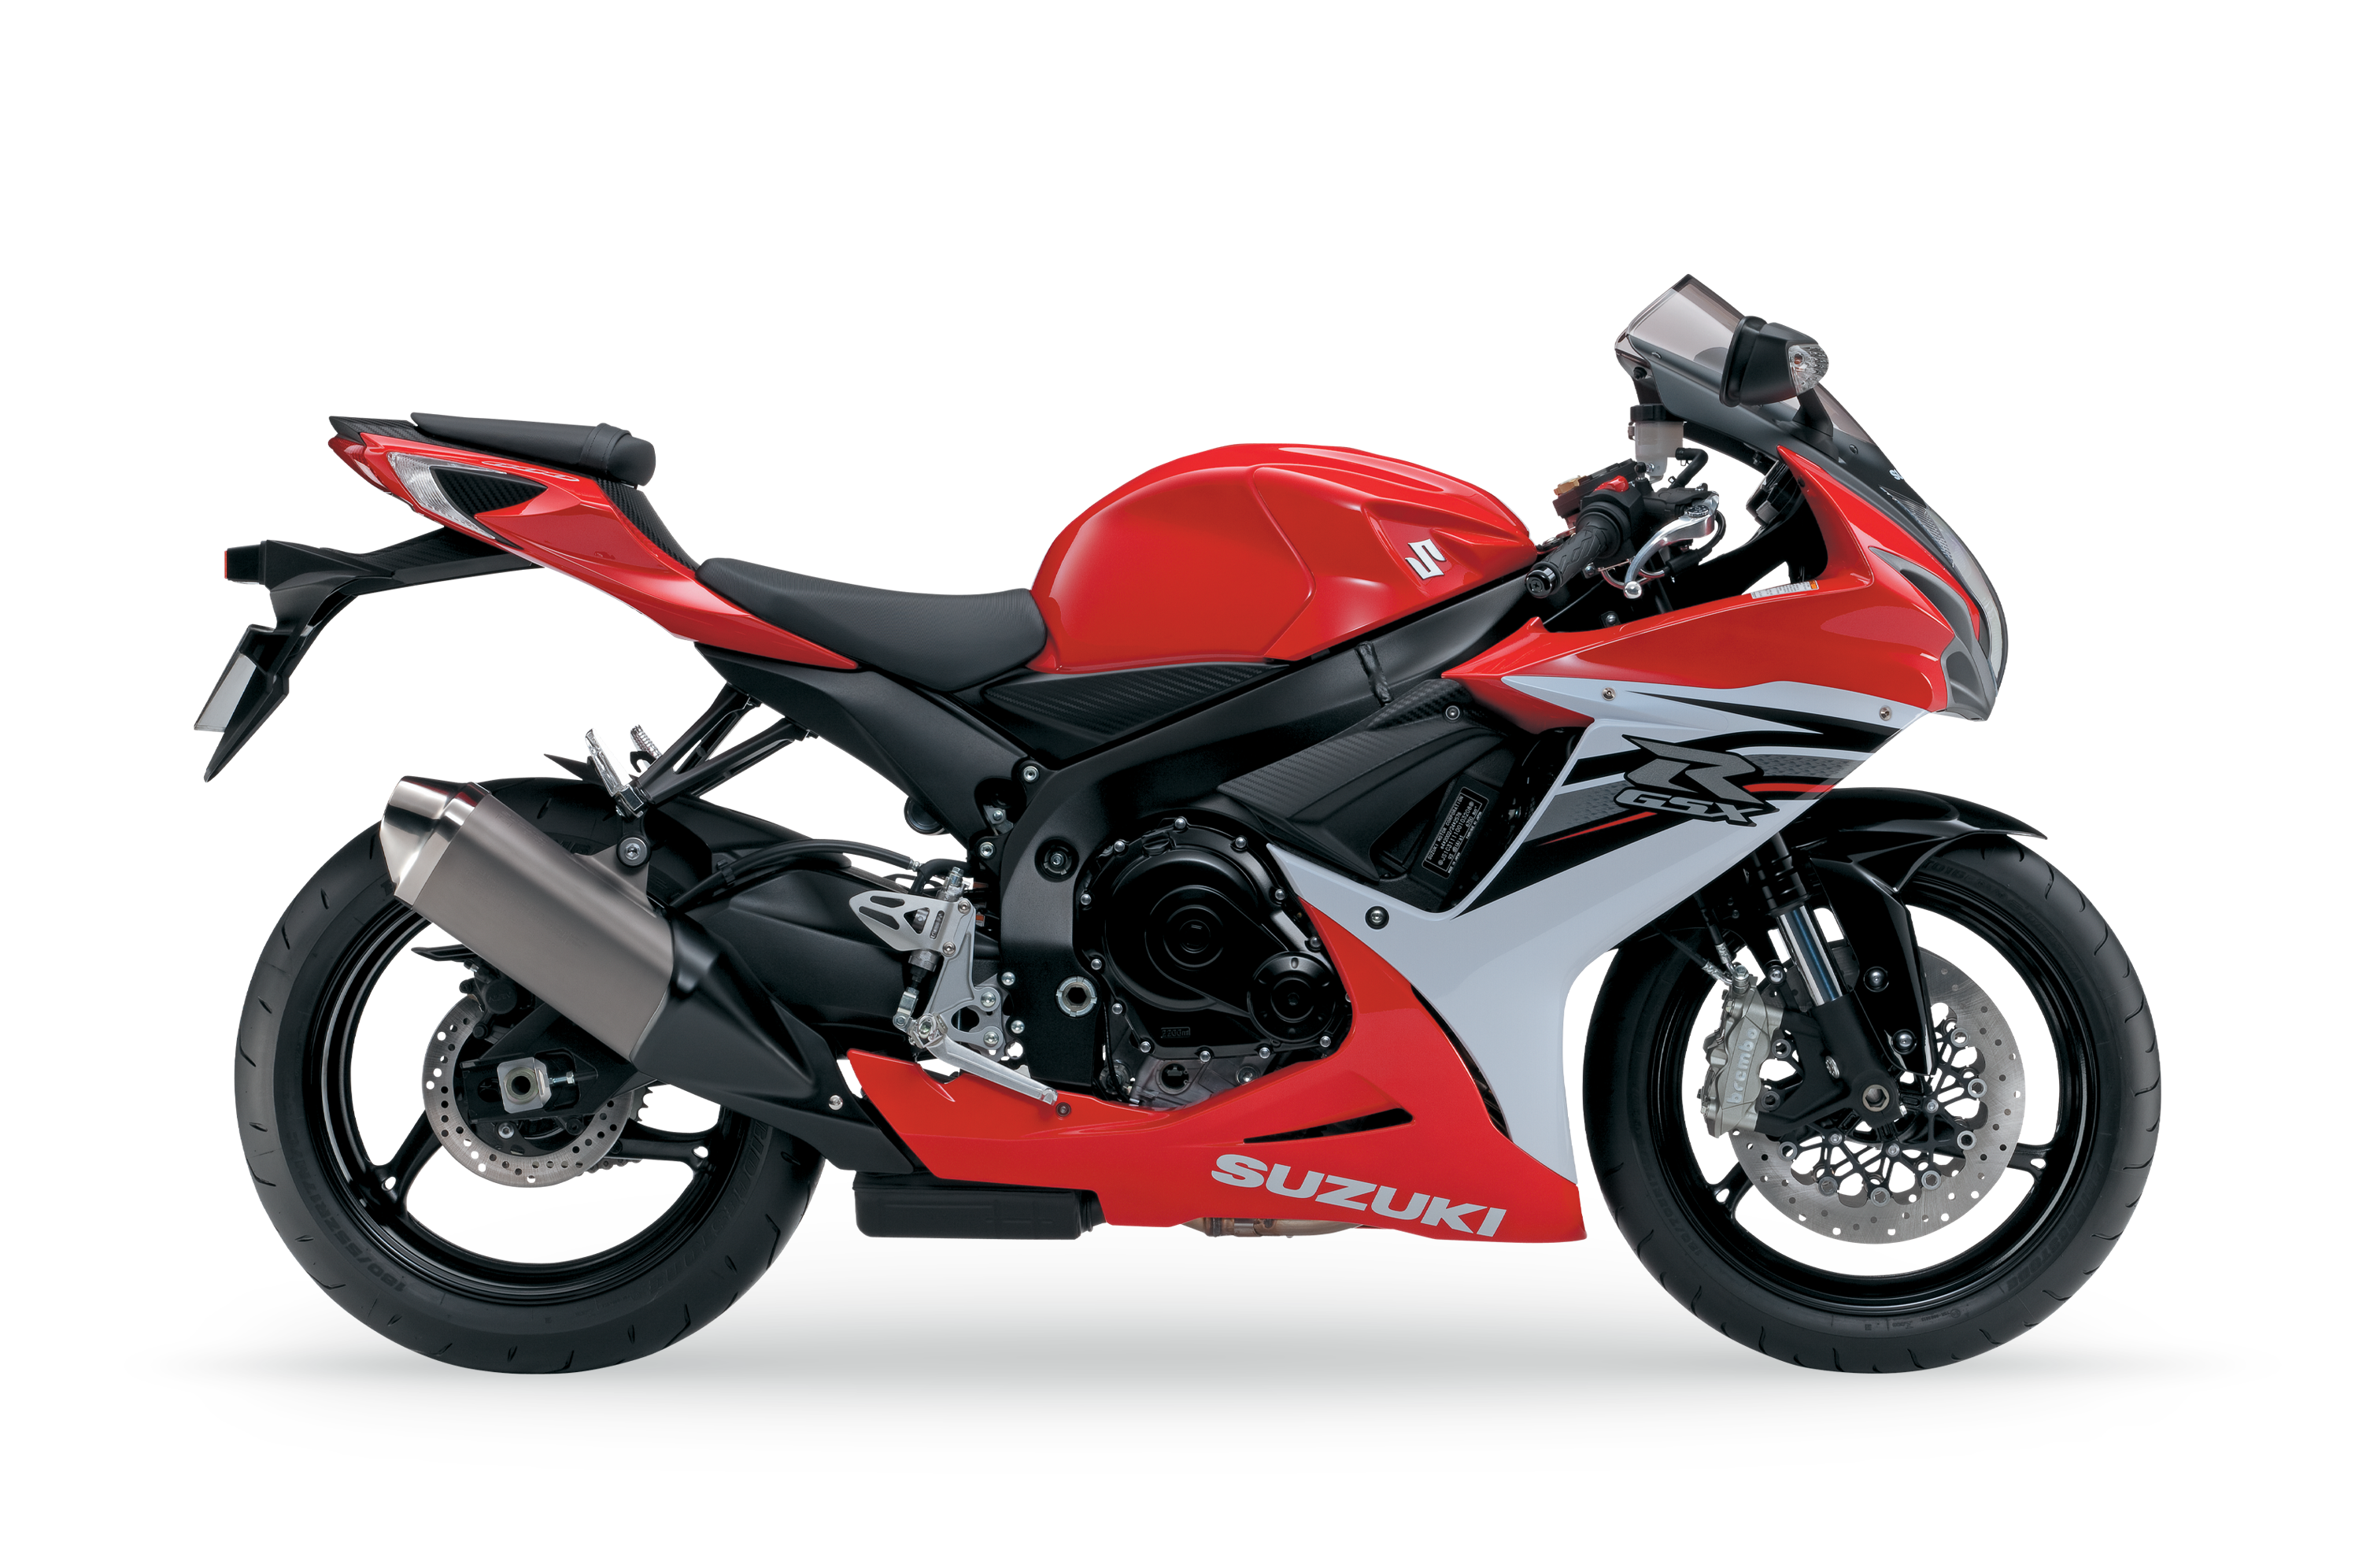 Motorcycle png images. Image purepng free transparent